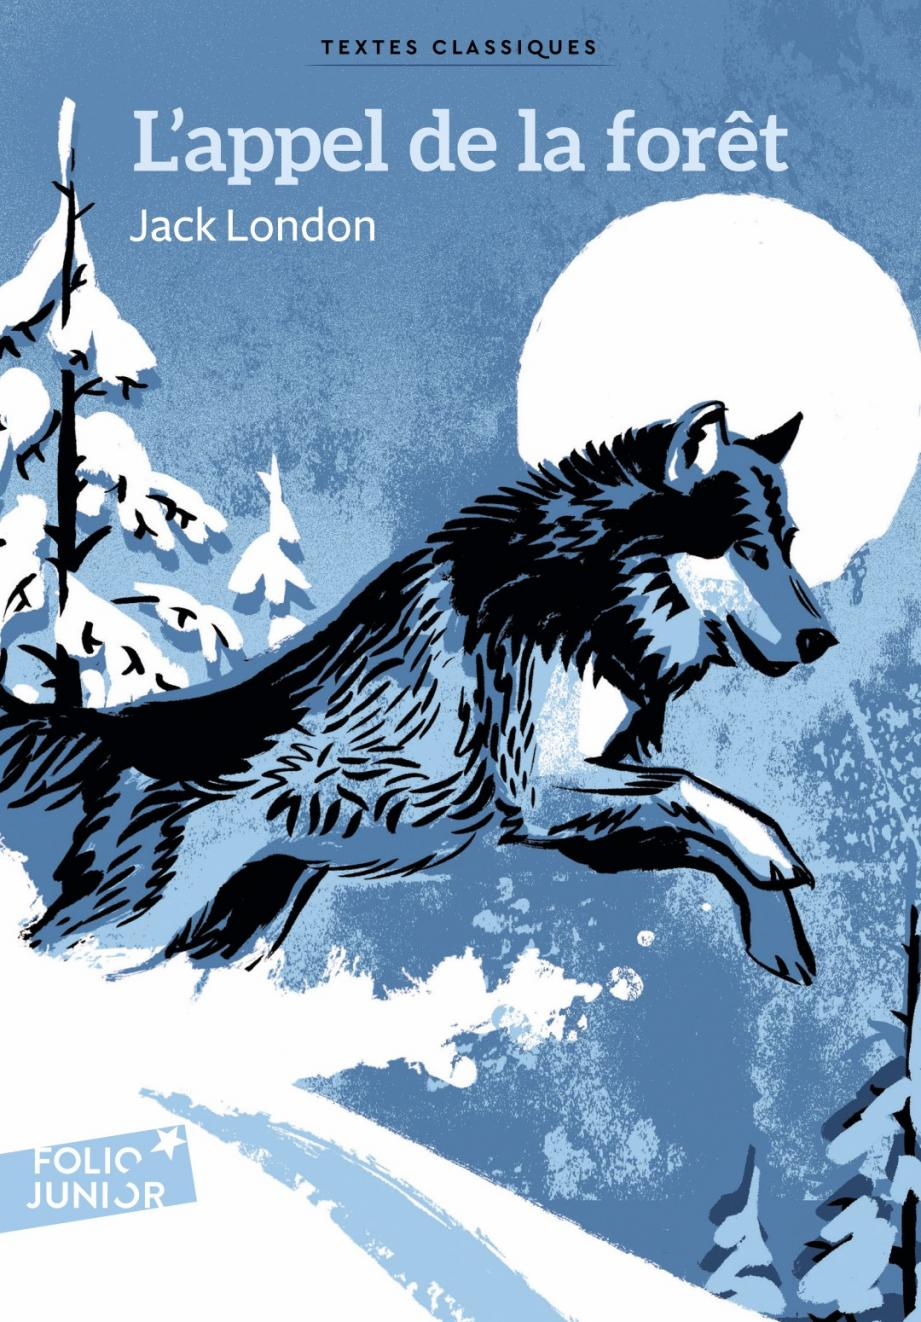 L'appel de la forêt de Jack London.